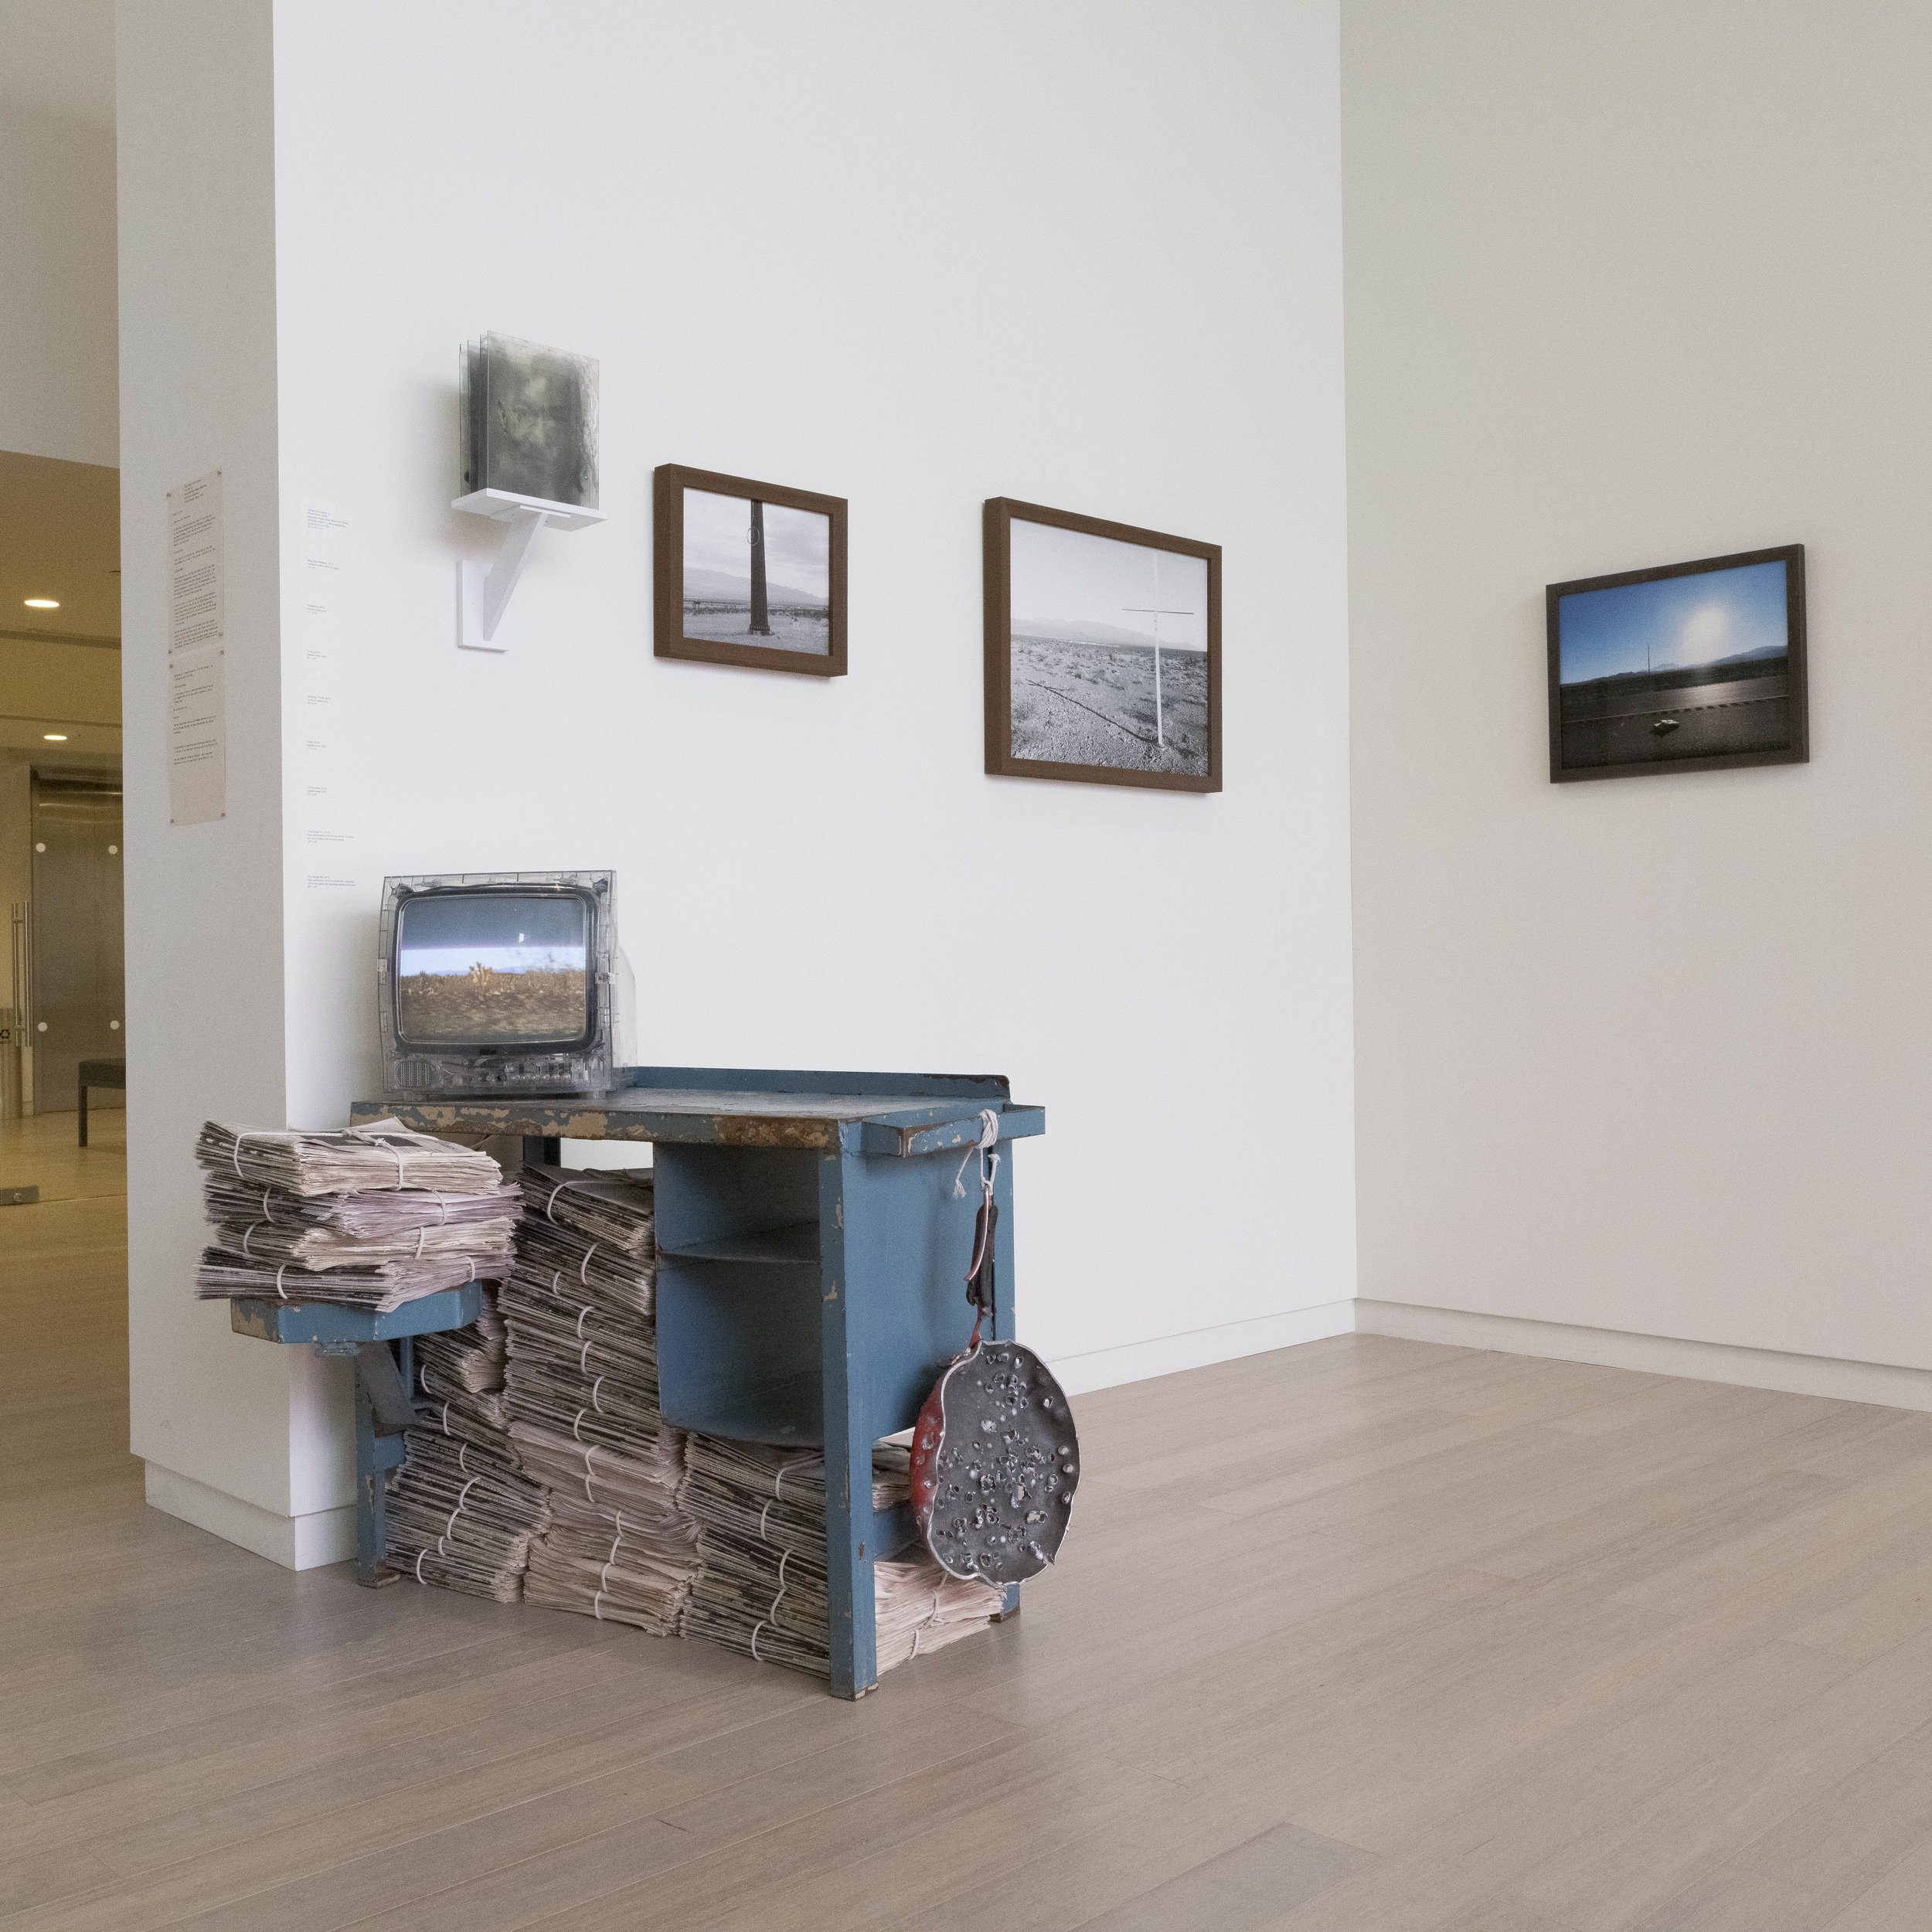 Installation at Wallach Gallery - Lenfest Center of the Arts, New York, New York, 2019